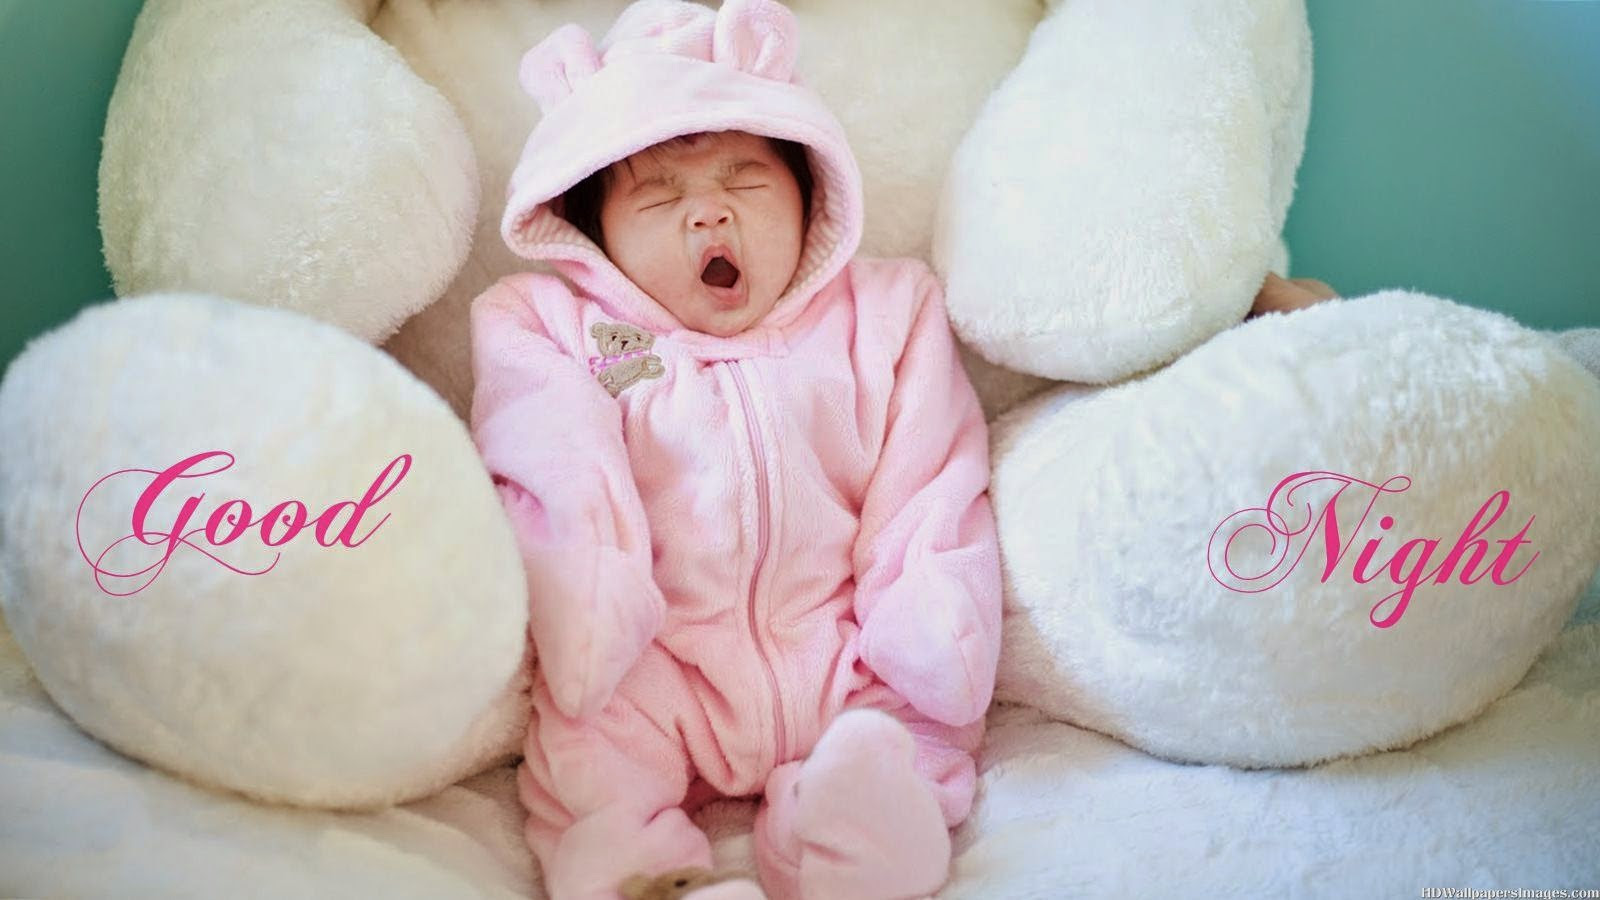 Download Cute Yawing Baby Goodnight Wallpapers Good Night